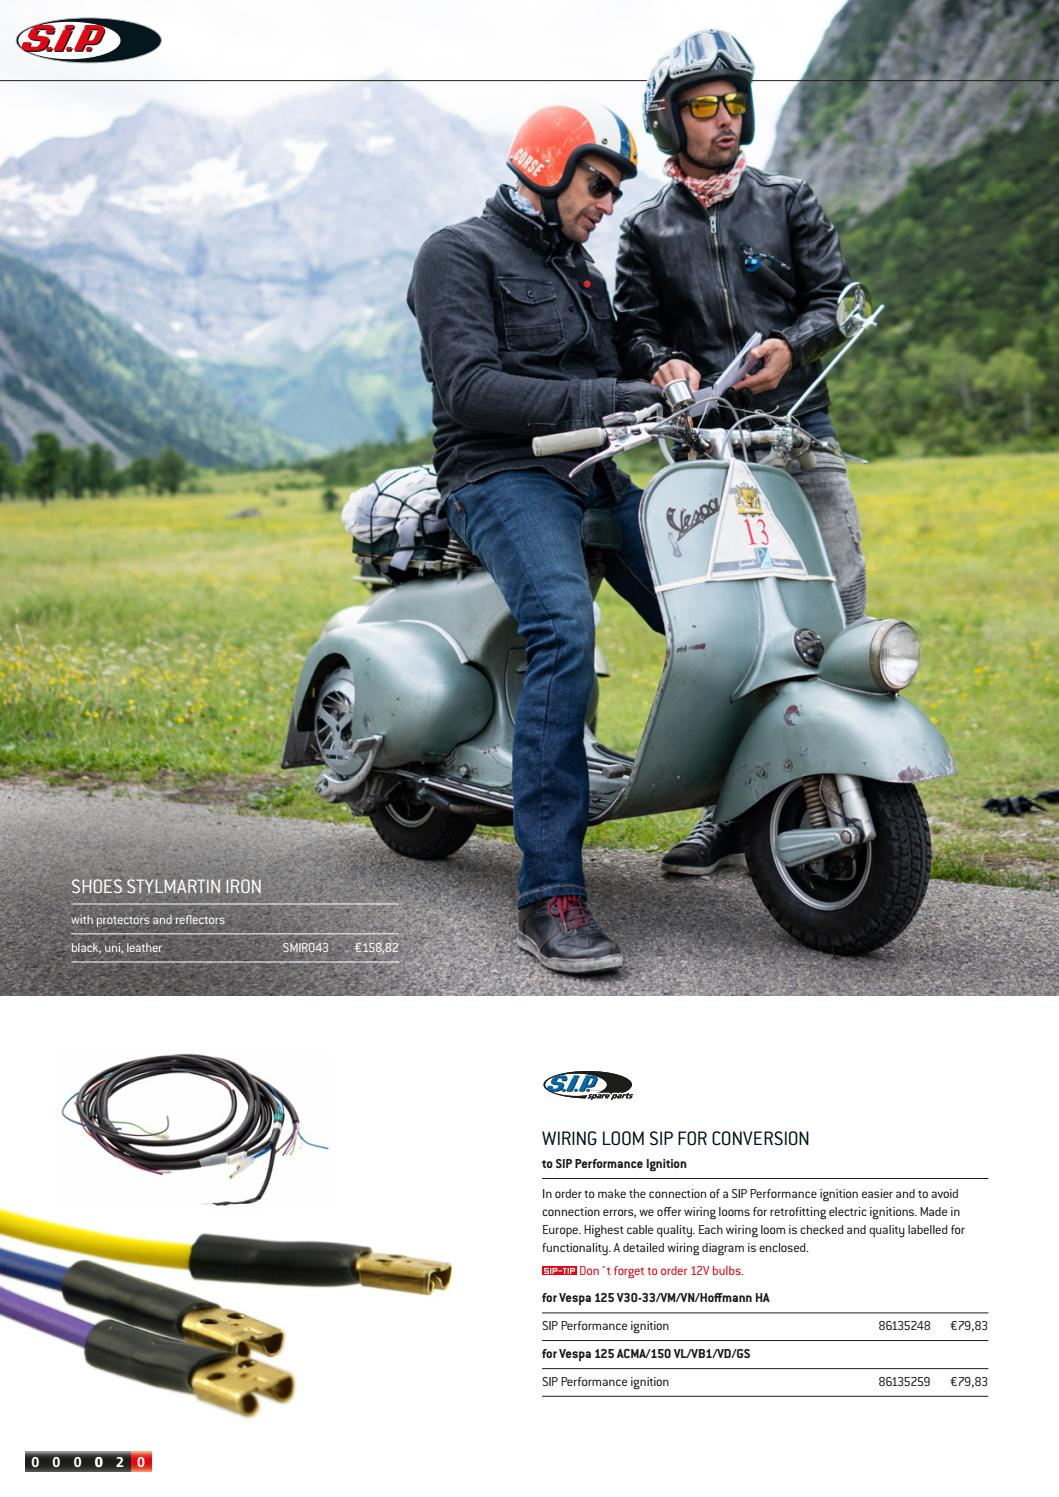 Catalogue SIP for Wideframe Vespa - Accessories & Tuning for ... on vespa v50 wiring, vespa parts diagram, vespa switch diagram, scooter battery wire diagram, electric scooter diagram, vespa dimensions, vespa frame diagram, vespa engine, vespa seats, vespa motor diagram, vespa clock, vespa 150 wiring, vespa stator diagram, vespa accessories, vespa sprint wiring,